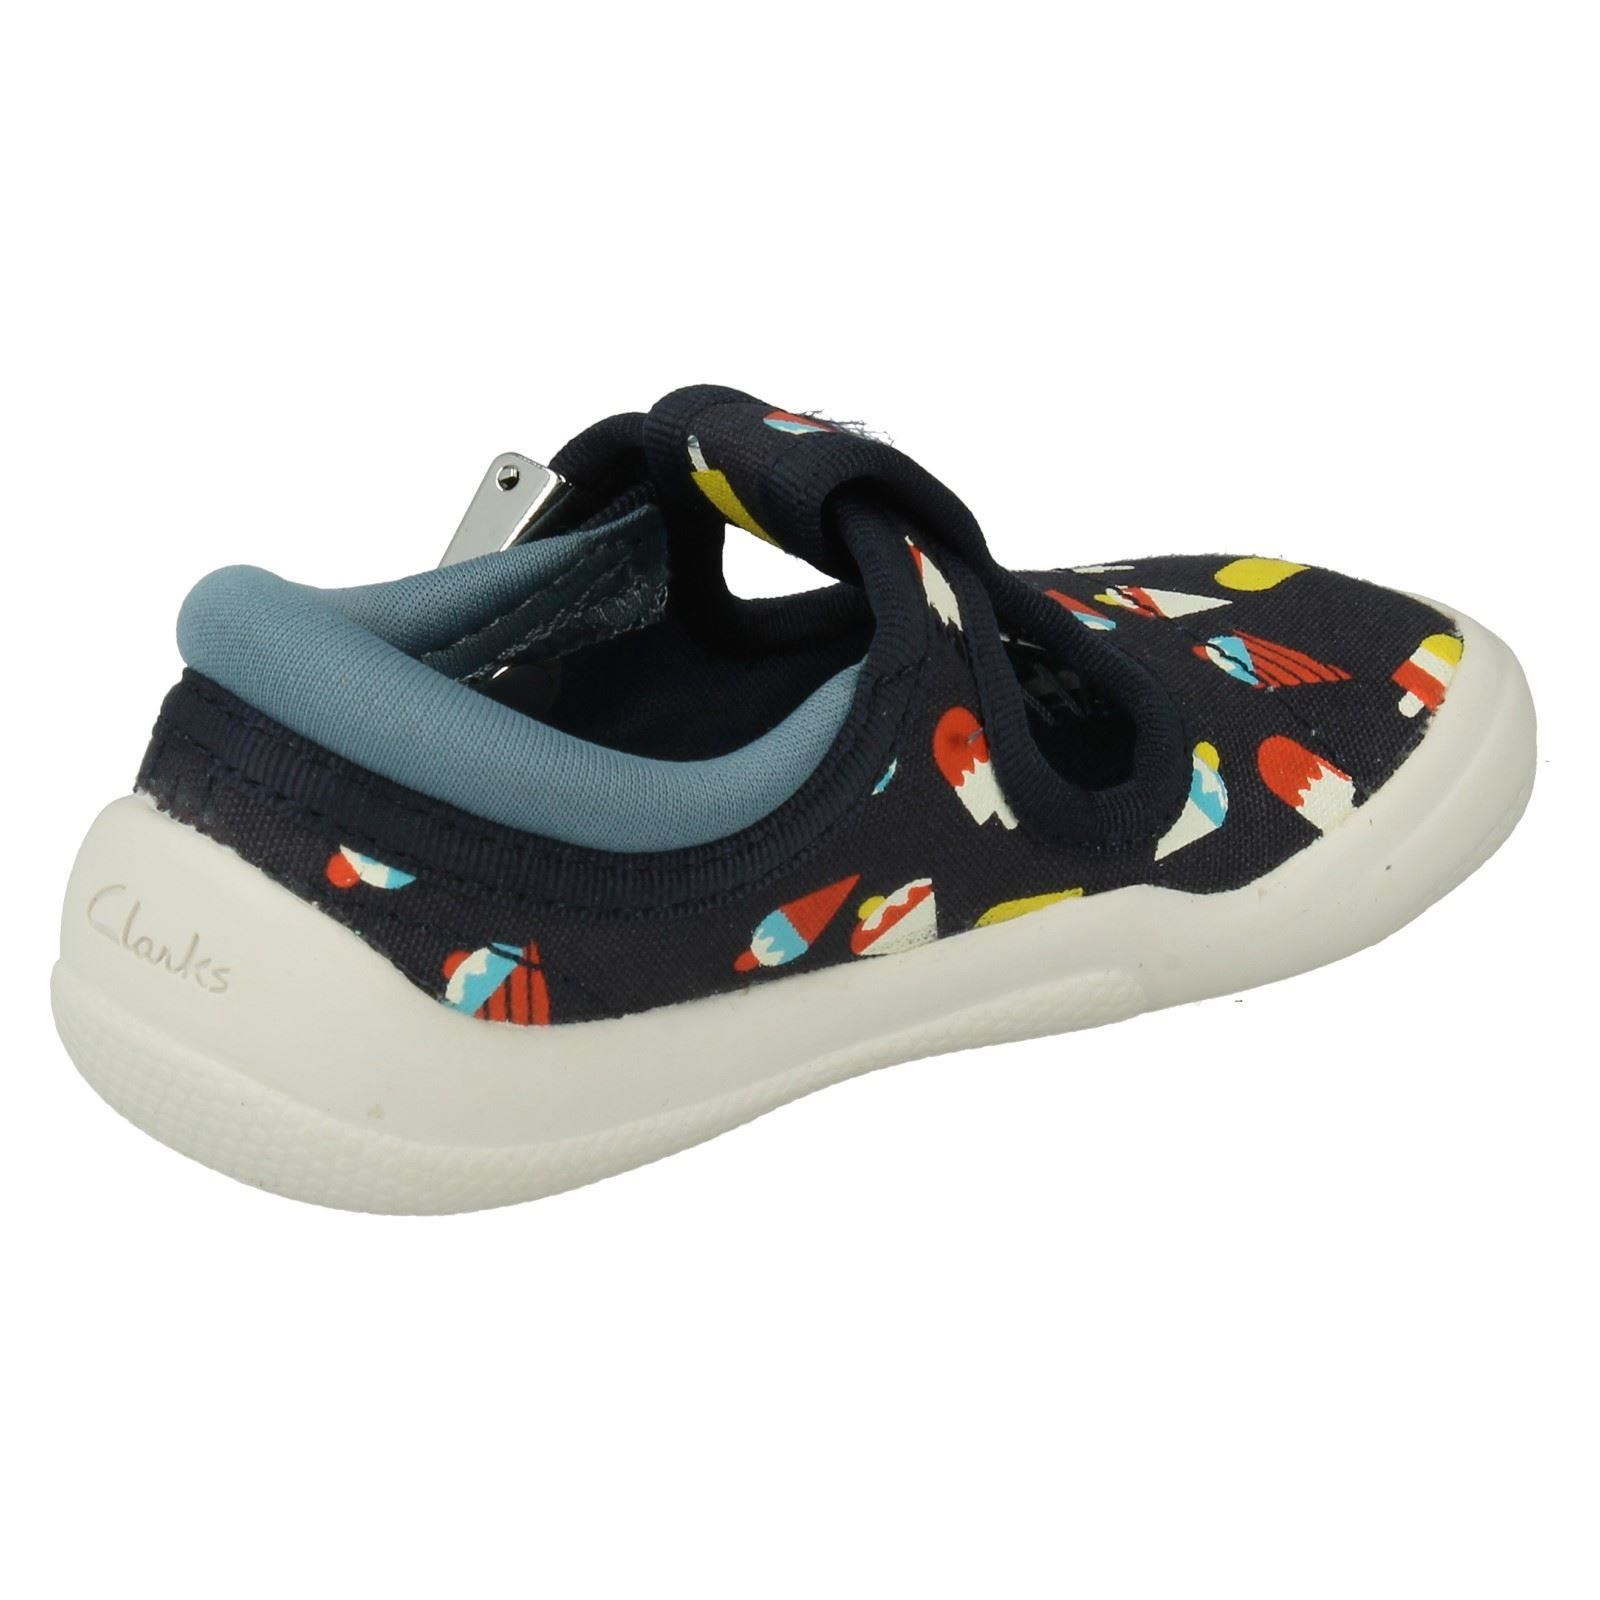 Boys Clarks Canvas First Shoes Style -Briley Sky